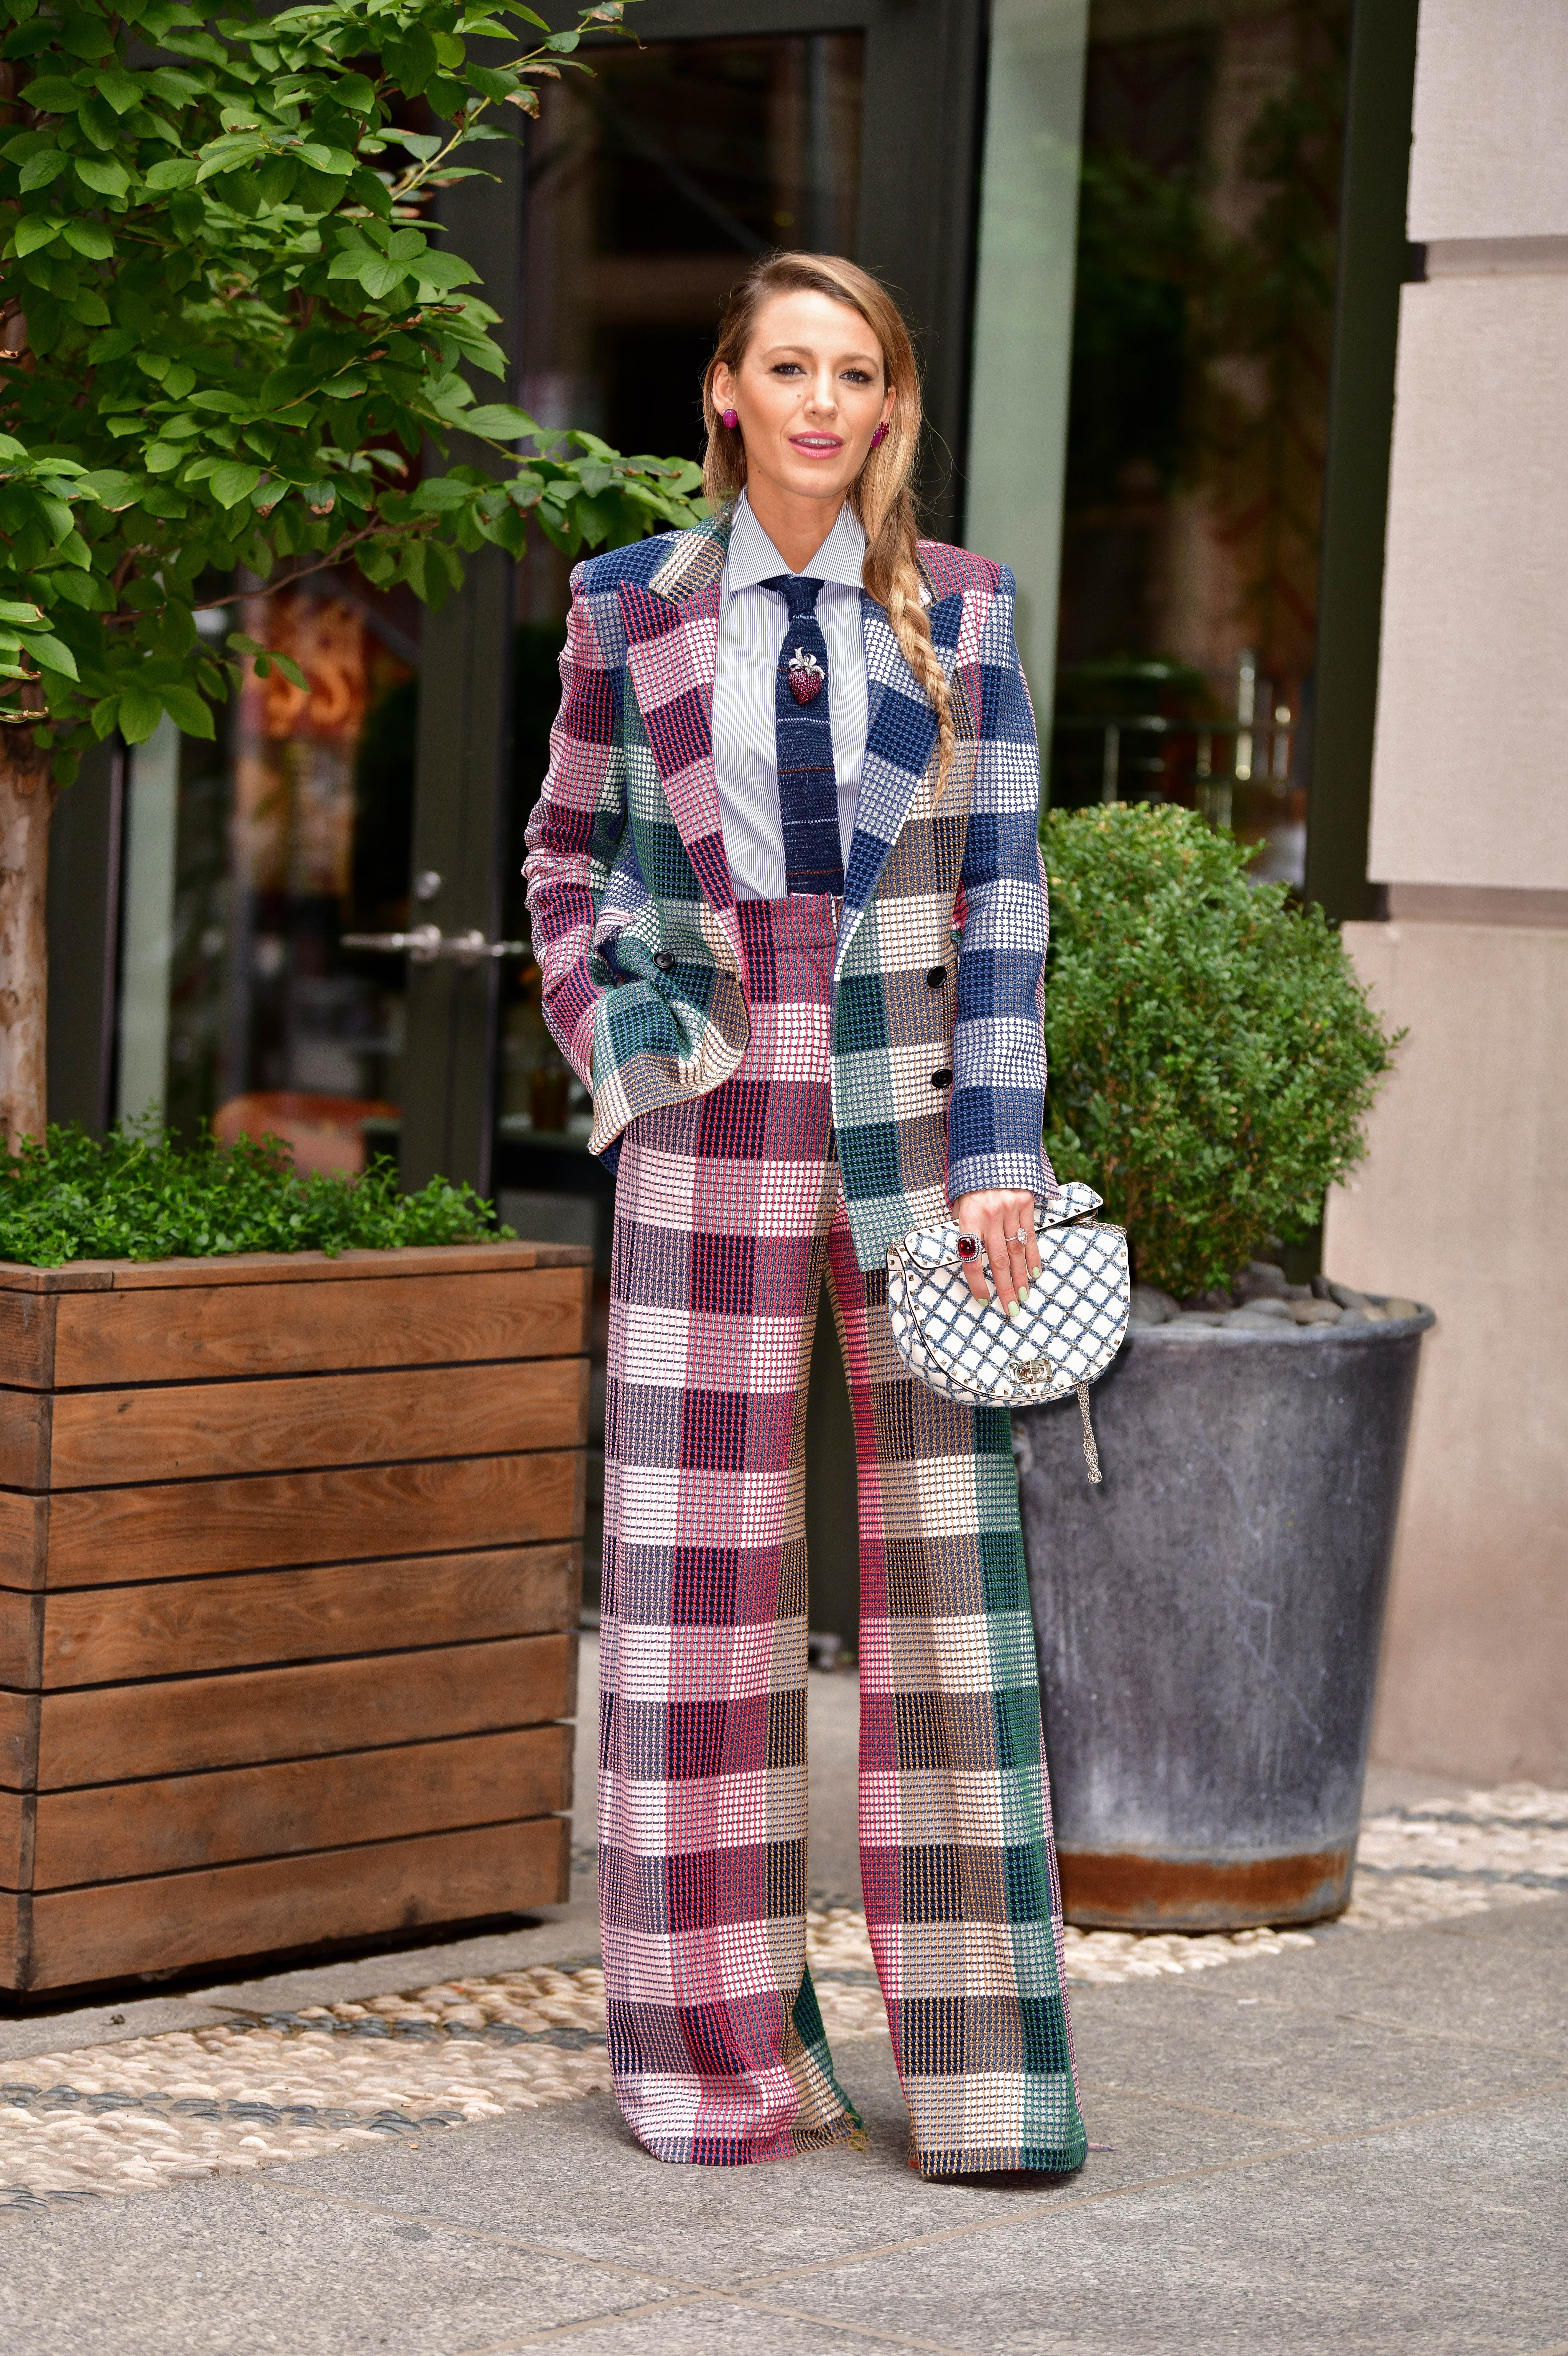 """<p>It's no secret Blake Lively is loving herself in a <a href=""""https://style.nine.com.au/2018/08/21/08/21/neon-blake-lively-kim-kardashian"""" target=""""_blank"""" title=""""pantsuit"""" draggable=""""false"""">pantsuit</a> at the moment.</p> <p>In the lastweek alone,<a href=""""https://style.nine.com.au/2018/05/15/15/33/blake-lively-style"""" target=""""_blank"""" title="""" theactress"""" draggable=""""false""""> the actress</a>has stepped out in seven pantsuits, not letting a little thing like 30+ degree heat in New York stop her from rocking the tailored aesthetic.</p> <p>From a blue velvet Brunello Cucinellisuit, to the not-to-be-missed bold<a href=""""https://style.nine.com.au/2018/08/21/08/21/neon-blake-lively-kim-kardashian"""" target=""""_blank"""" draggable=""""false"""">n</a><a href=""""https://style.nine.com.au/2018/08/21/08/21/neon-blake-lively-kim-kardashian"""" target=""""_blank"""" draggable=""""false"""">eon green Versace two-piece</a>, the former<em>Gossip Girl</em>star has had all versions covered. </p> <p>However, there is someone who isn't a fan of <em>The Age of Adeline</em> star's new suited-up obsession and he wasn't afraid to tell her. </p> <p>Perhaps he should have been.</p> <p>Lively posted an image of herself on Instagram in an all-plaid Roland Mouret suit along with the caption; """"Picnic anyone? I'll bring the tablecloth...""""</p> <p>To which one fan replied: """"I say this with so much love & respect for you babe, please hire a stylist or fire the one you're currently with.""""</p> <p>What @gabeluna may not know is that the 31 year-old is one of the few Hollywood A-lister's that actually doesn't have a stylist. She is responsible for all her own looks.</p> <p>""""Thank you for the tips, sir,"""" Lively responded to the criticism. """"Alas, I've tried to fire @blakelively so many times. But the b*tch just keeps coming back. She won't leave me alone.""""</p> <p>You go girl. We think Lively does a damn good job as her own stylist. </p> <p>Click through to see all the times Blake Lively has rocked the pantsuit trend lately.</p>"""